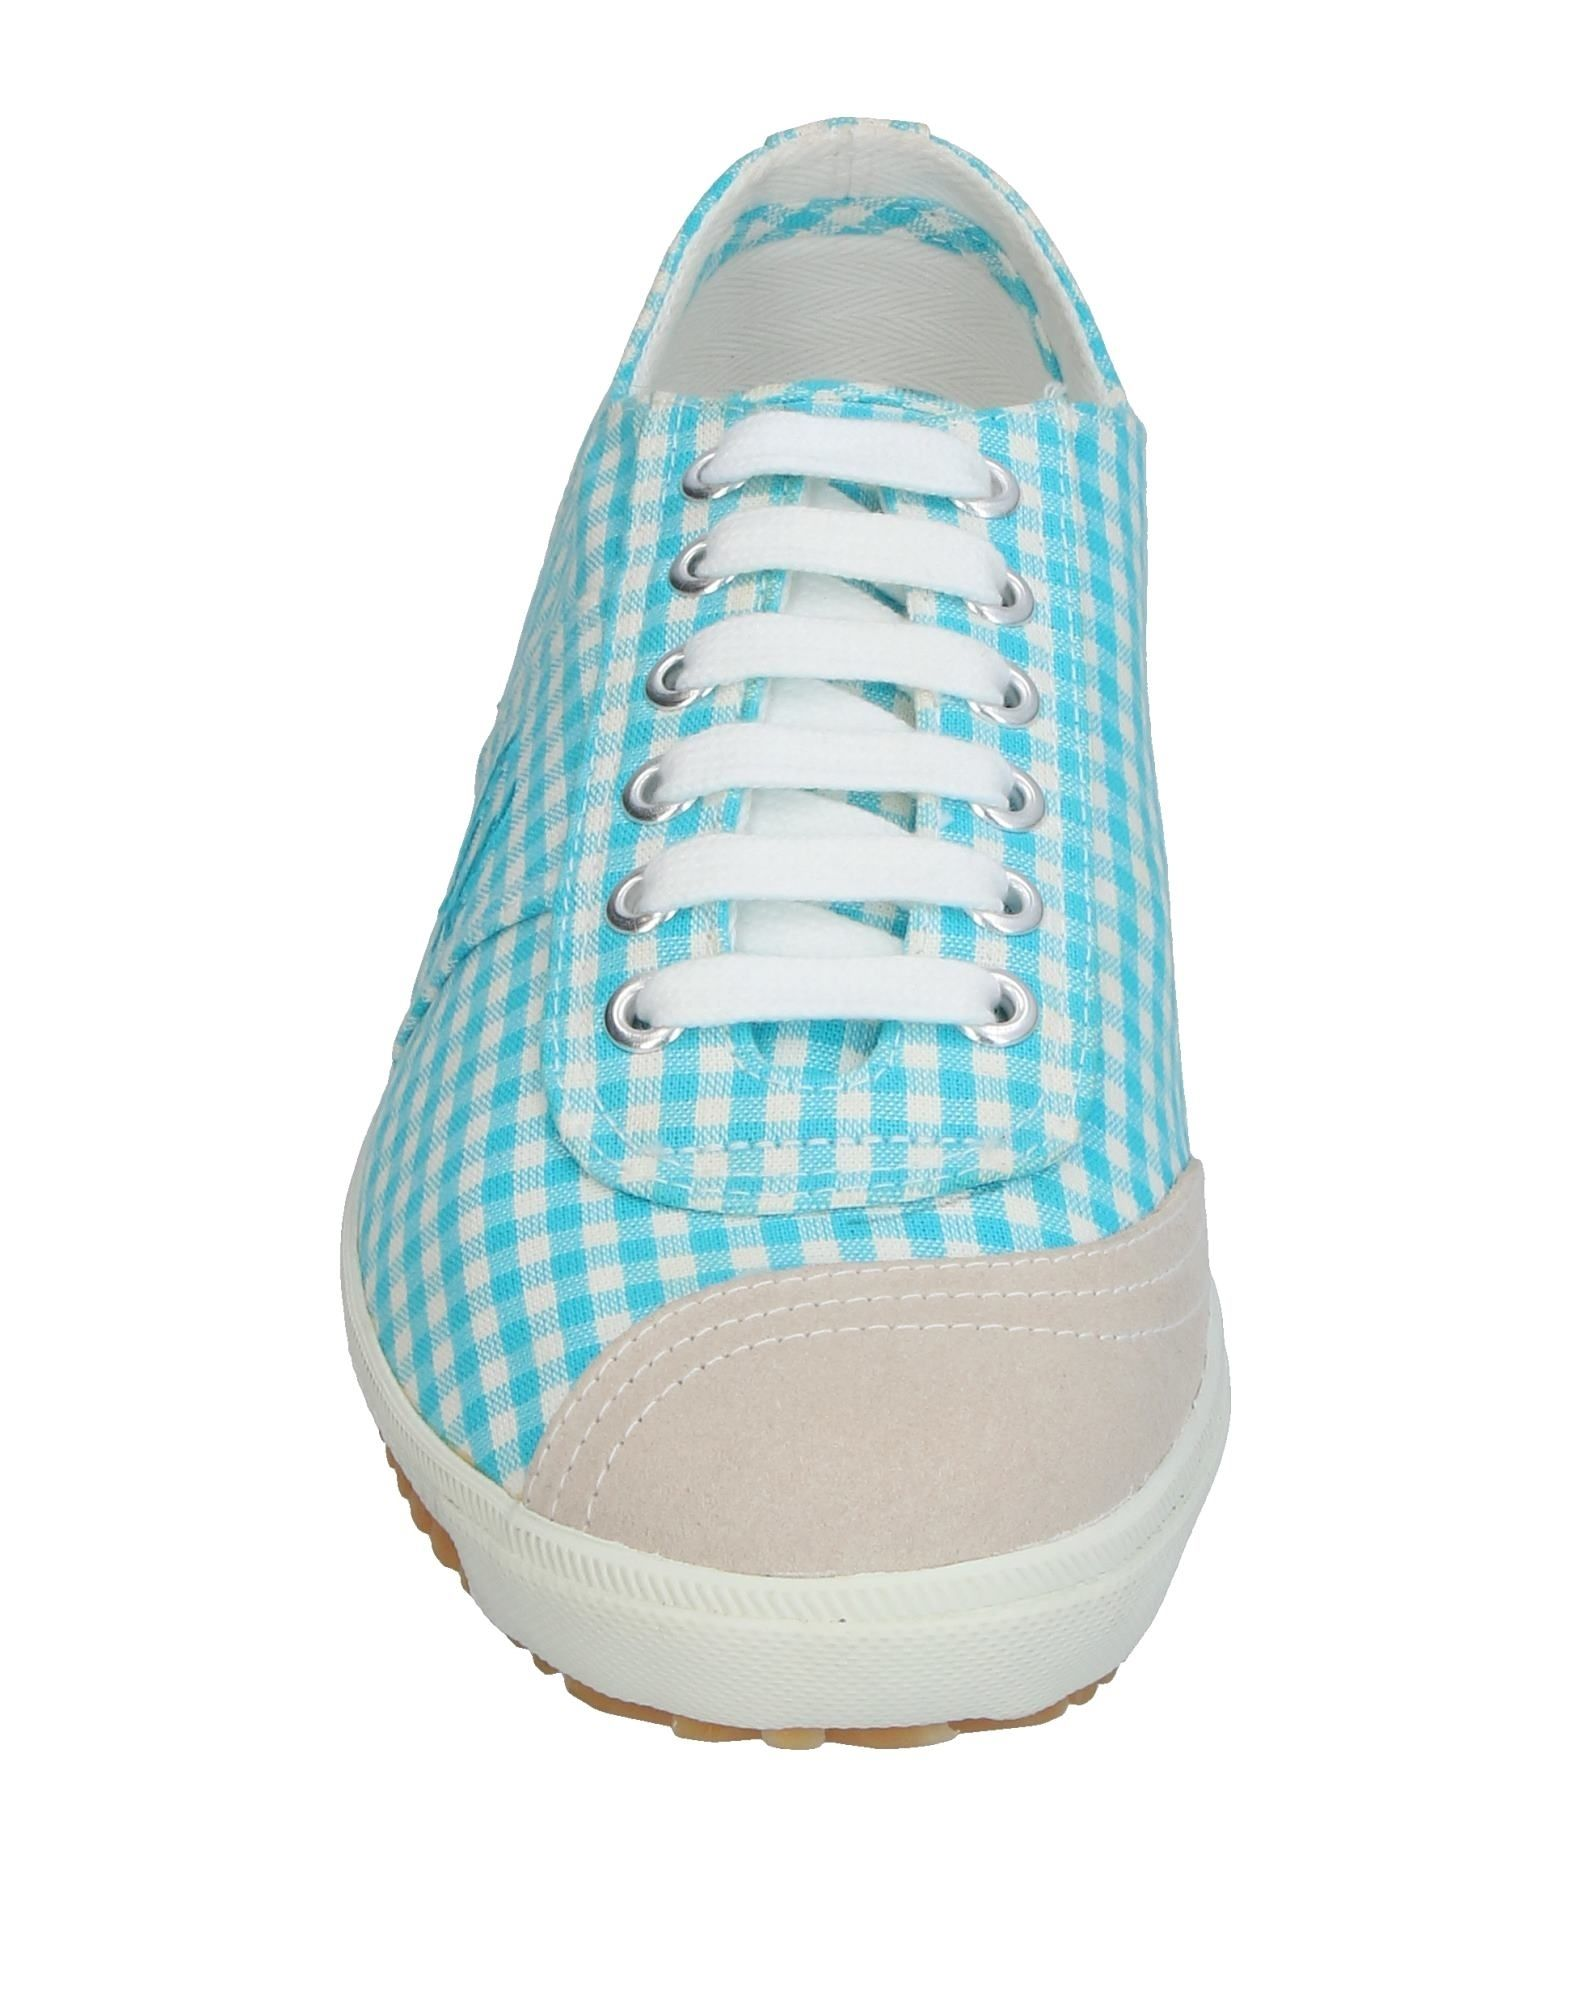 Sneakers Fred Perry Femme - Sneakers Fred Perry sur